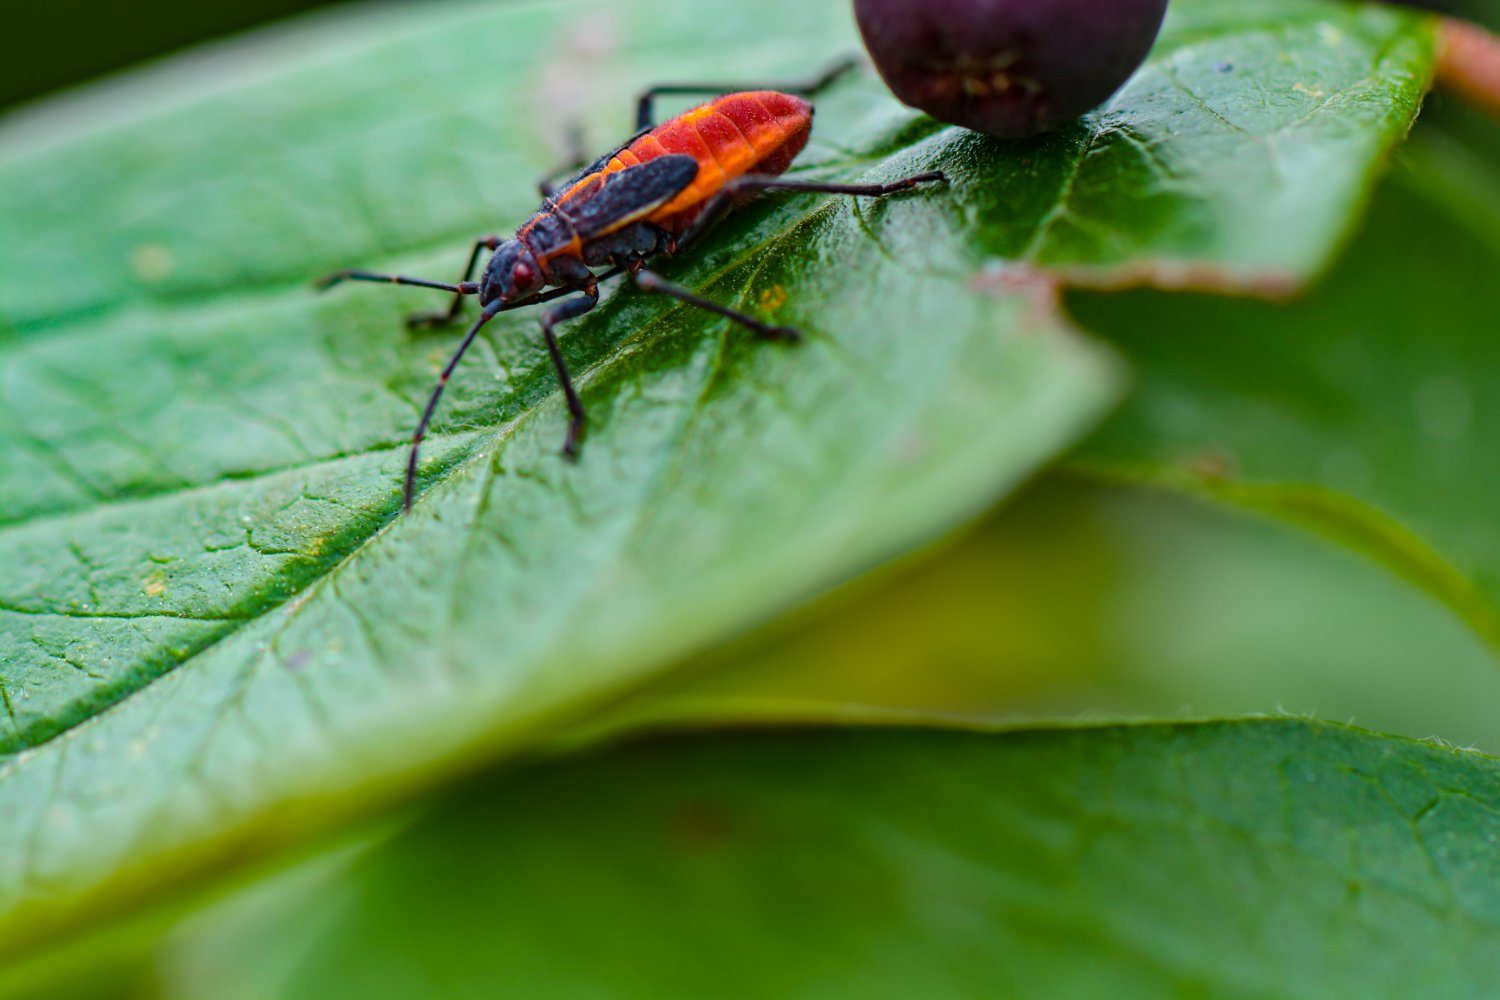 Baby Maple Bug On Green Leaf Digital Art Image Photograph